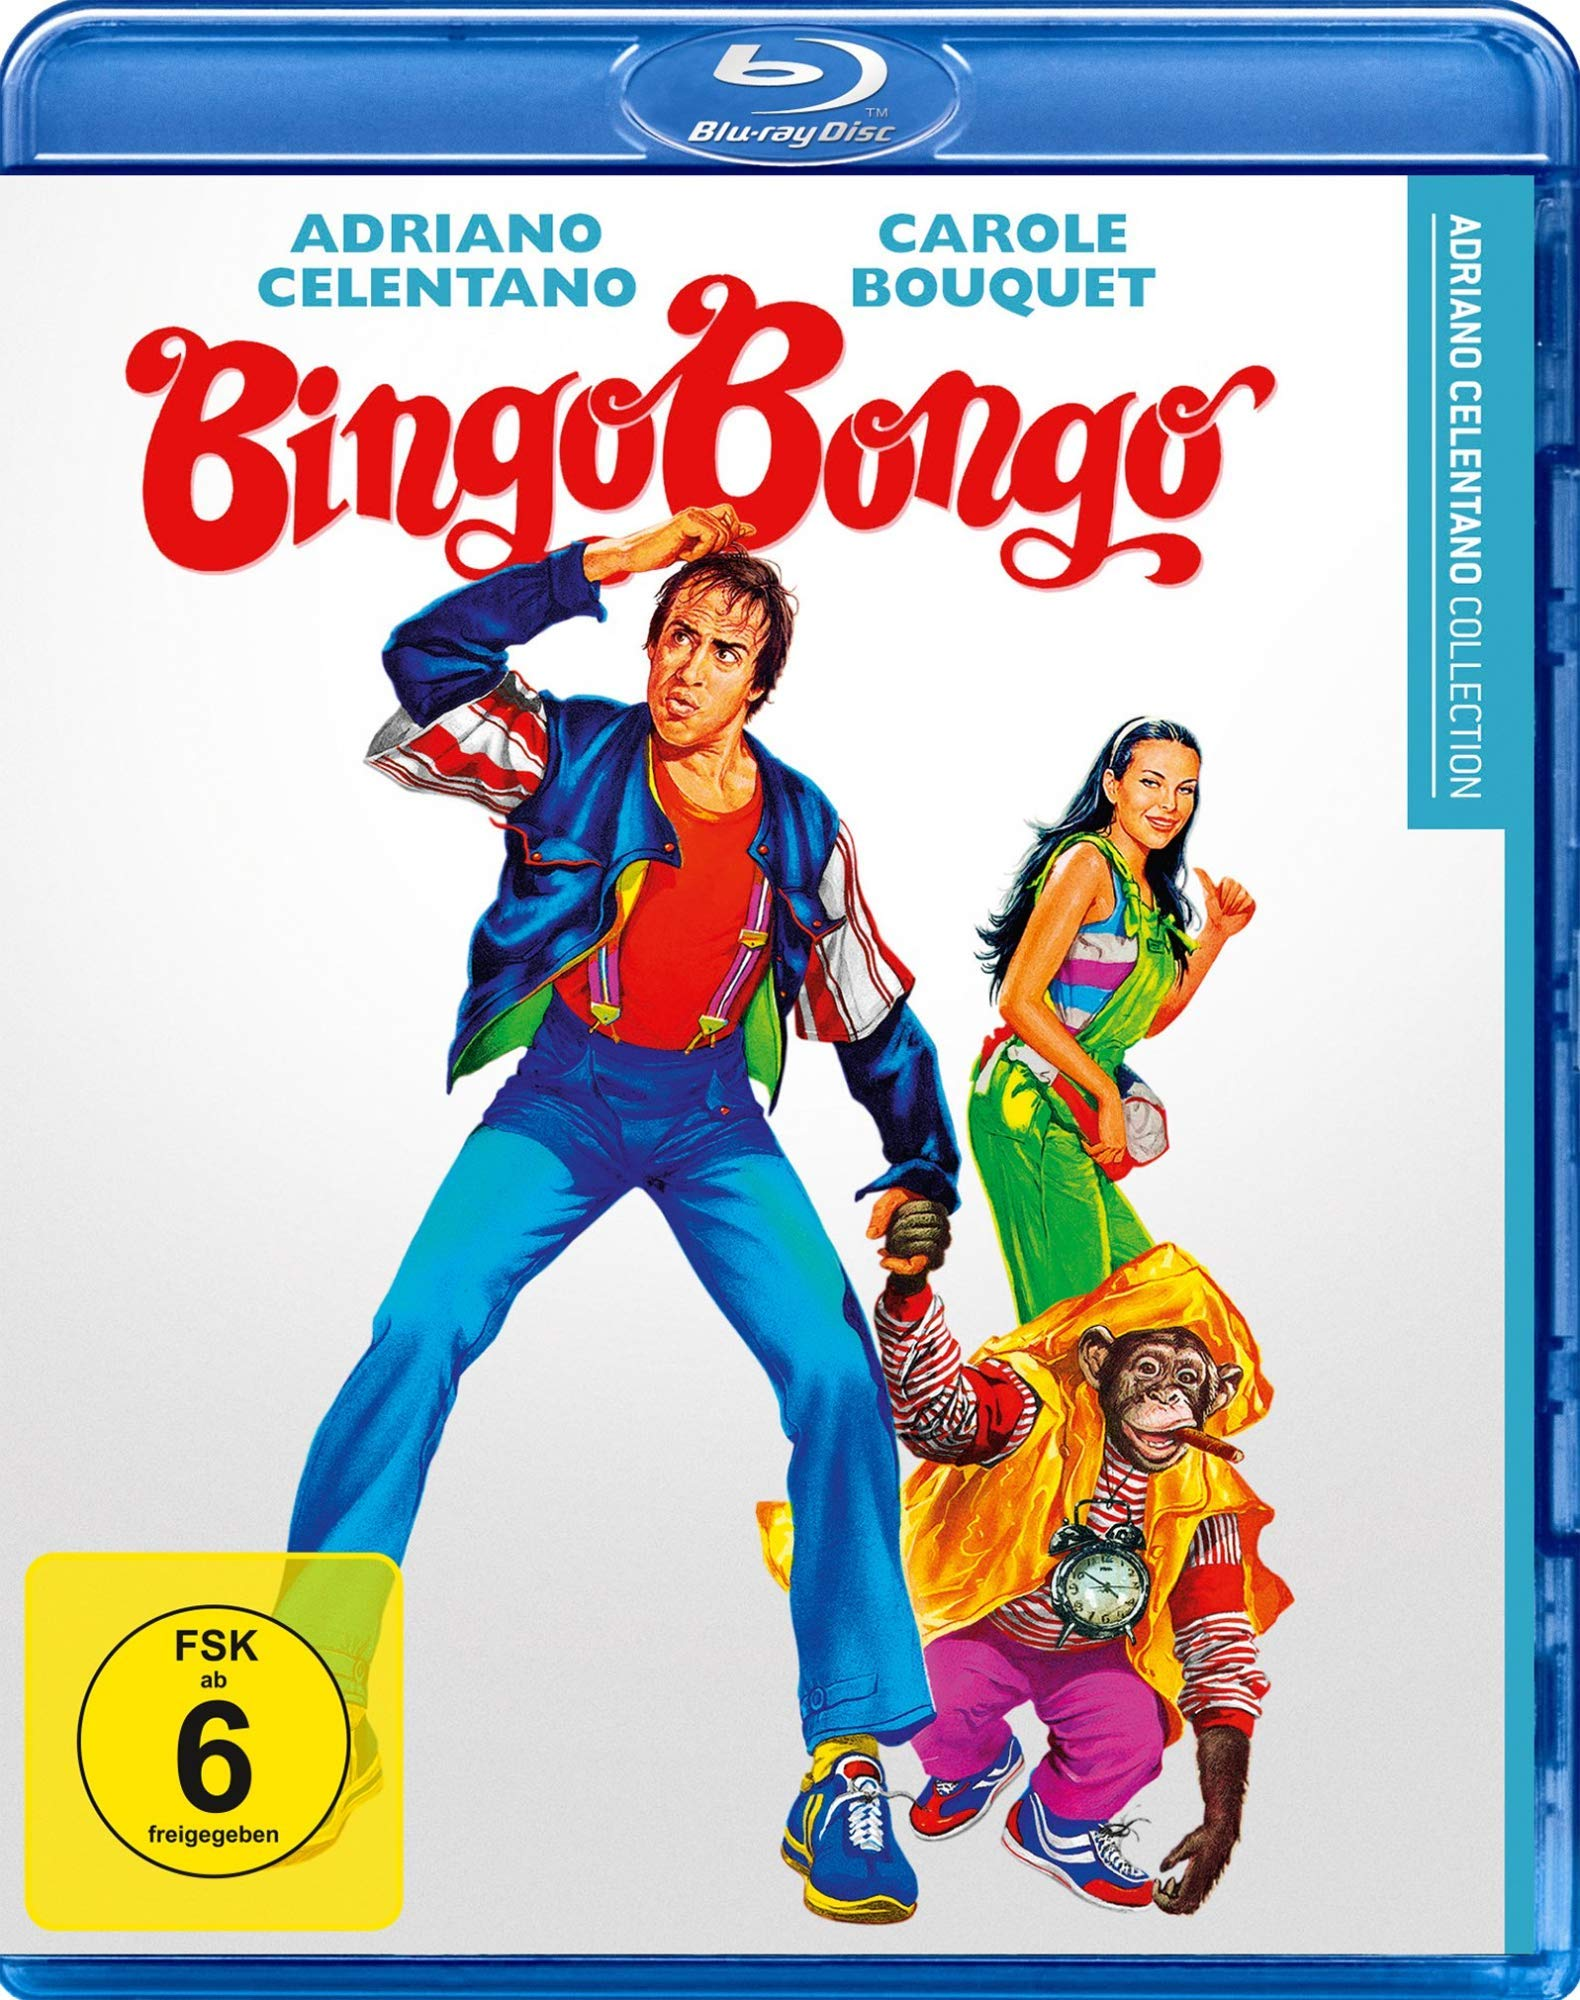 Amazon Com Bingo Bongo Blu Ray 4020628855857 Books